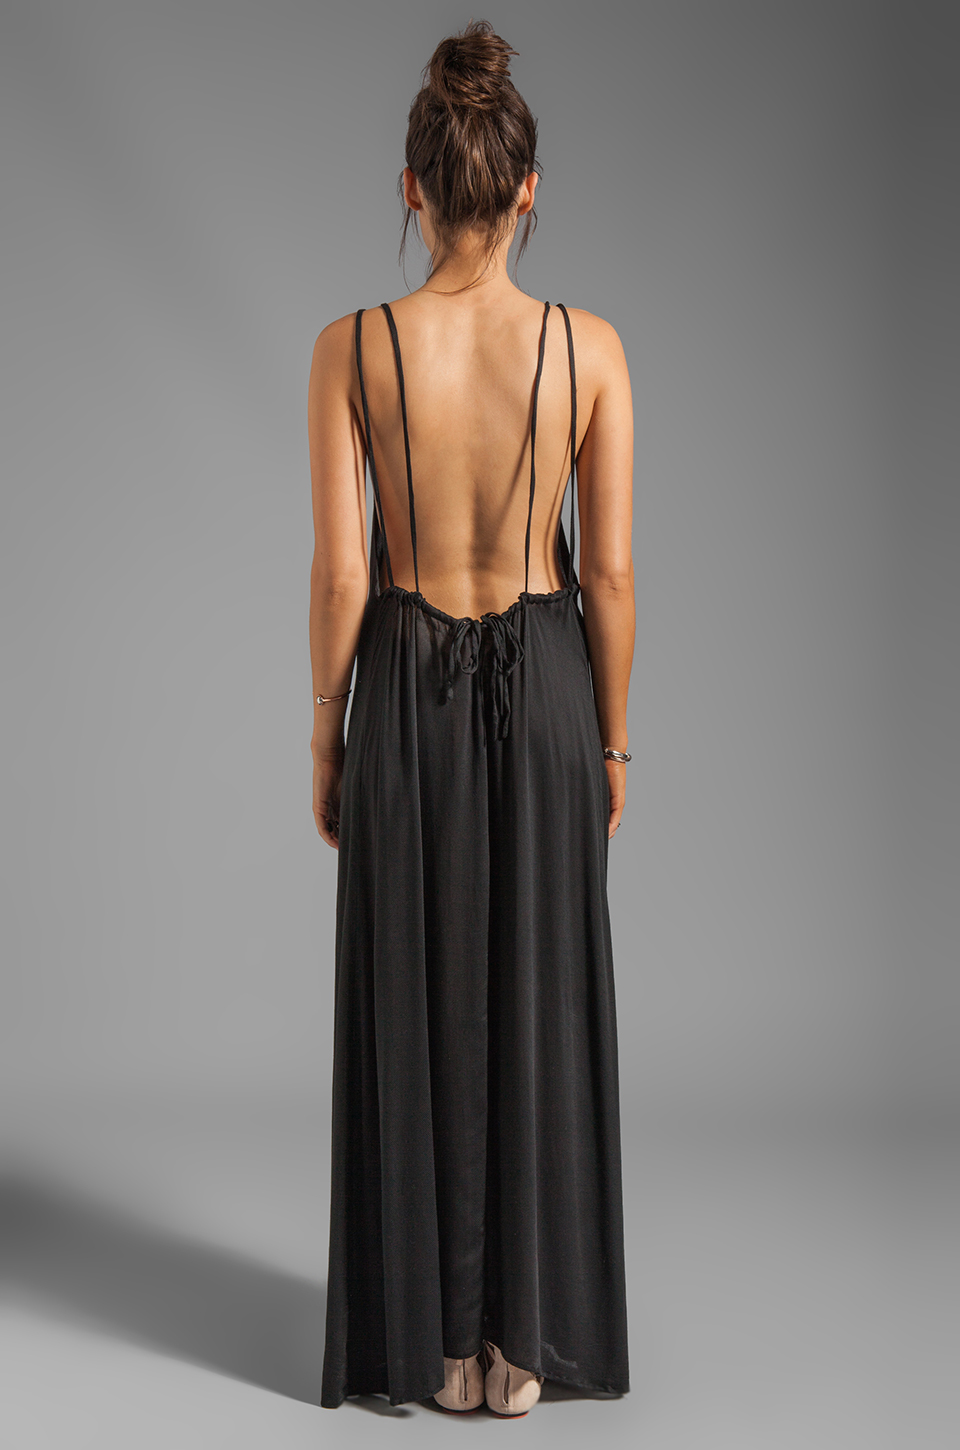 Backless Maxi Dress | ...